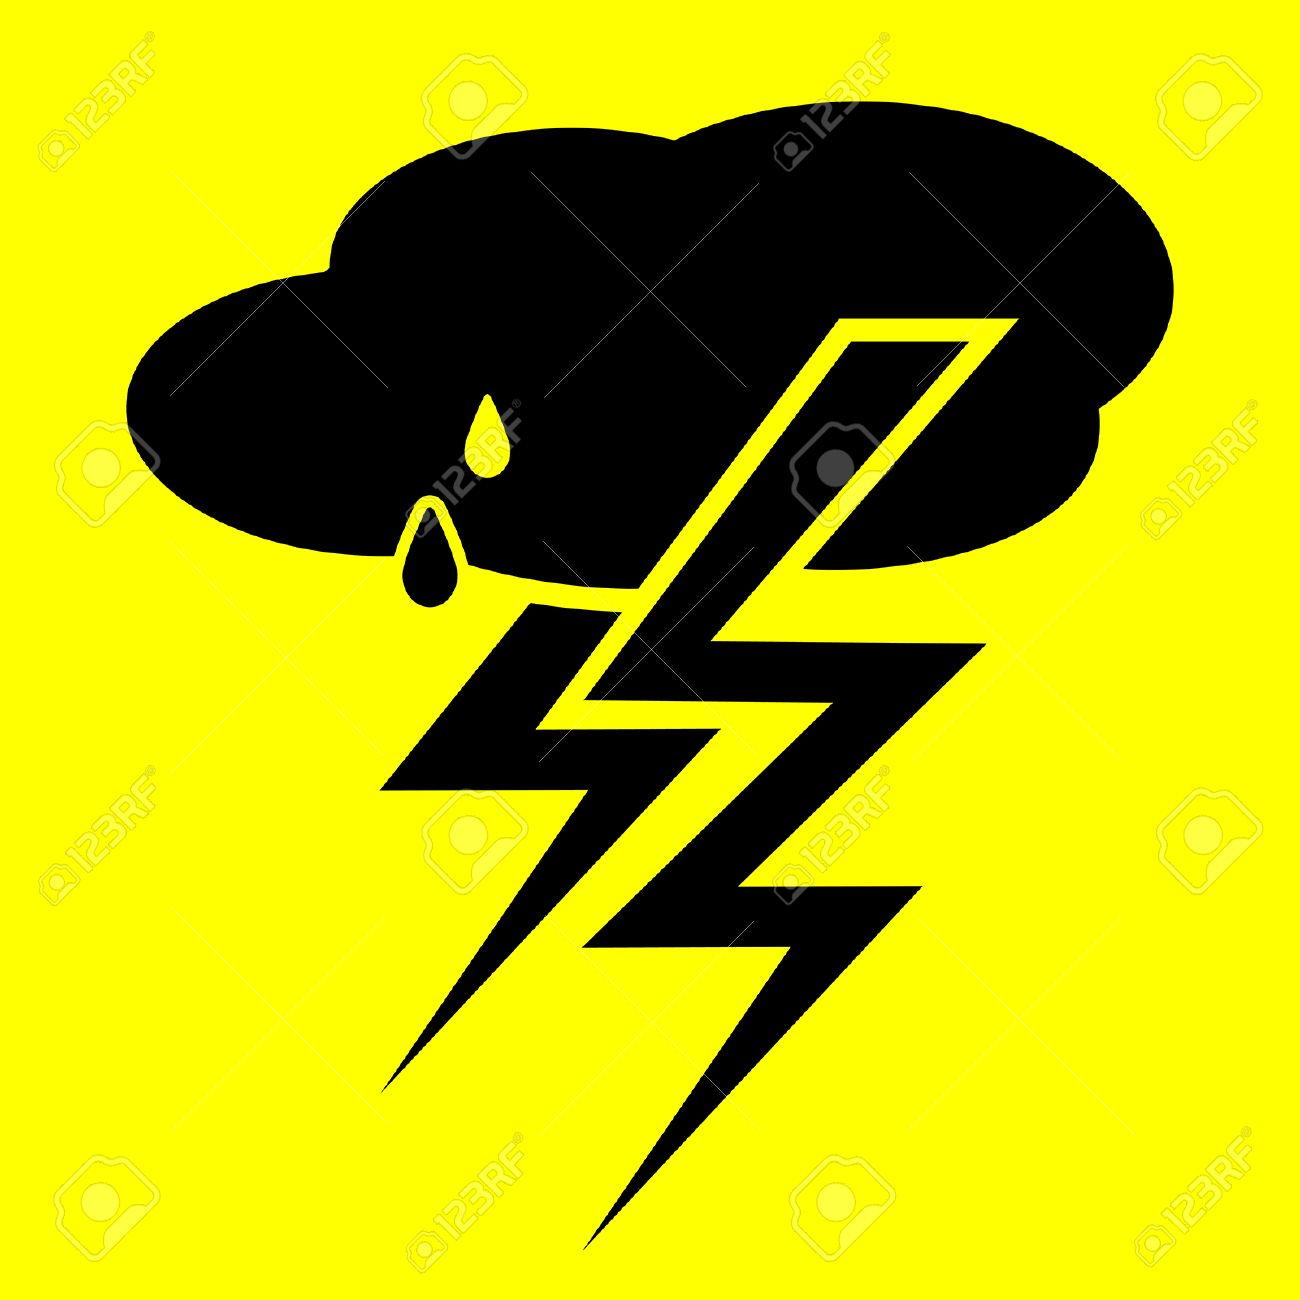 Storm symbol on a yellow background royalty free cliparts vectors storm symbol on a yellow background stock vector 24525936 buycottarizona Image collections